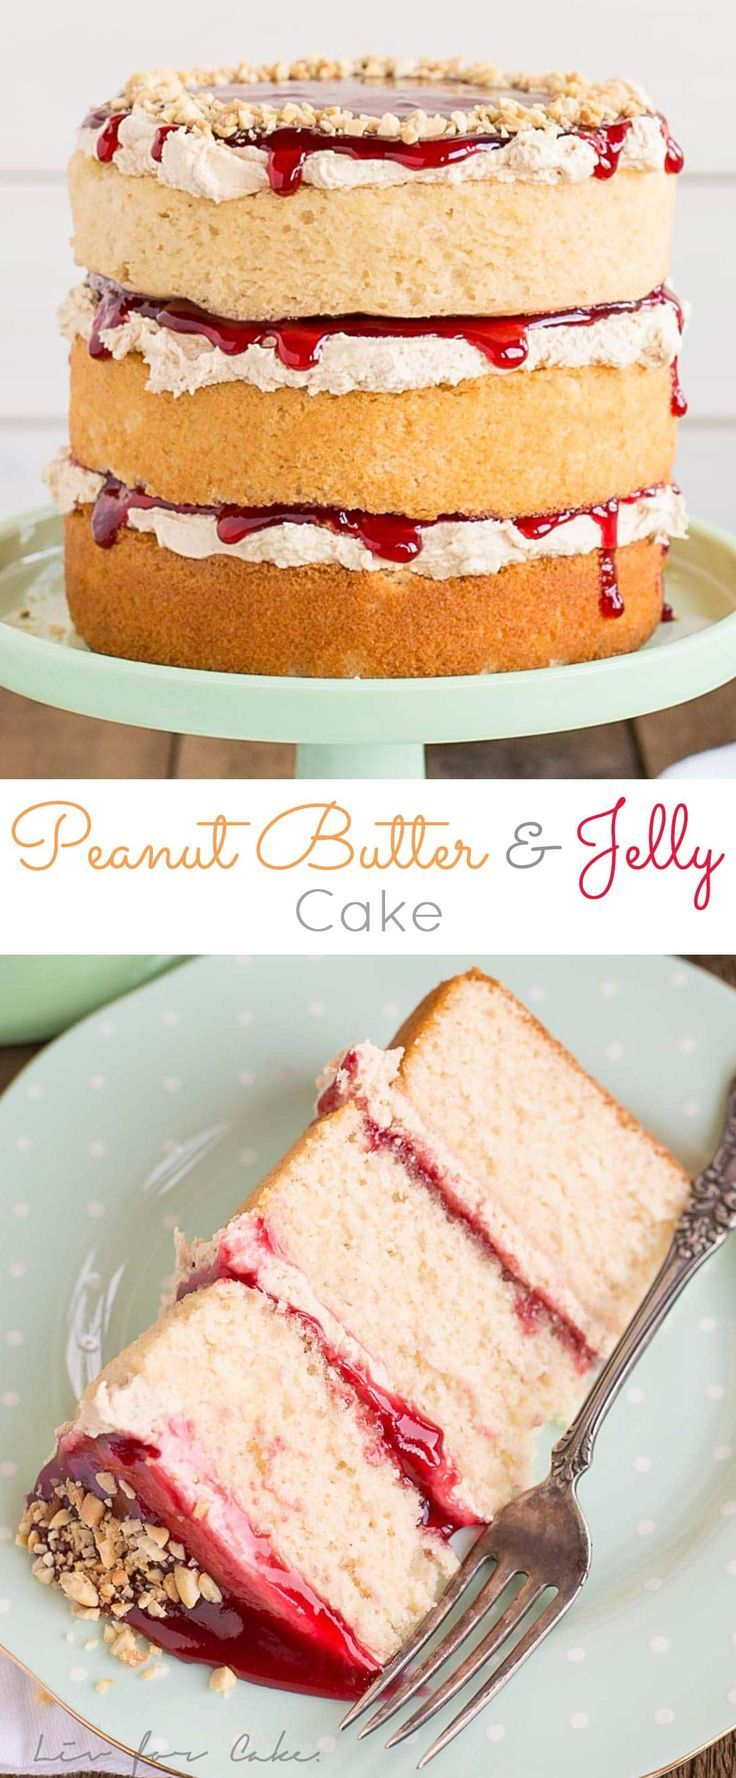 Peanut butter cake layers and frosting paired with your favourite jam. This Peanut Butter & Jelly Cake is a childhood flashback in the best way possible! | livforcake.com